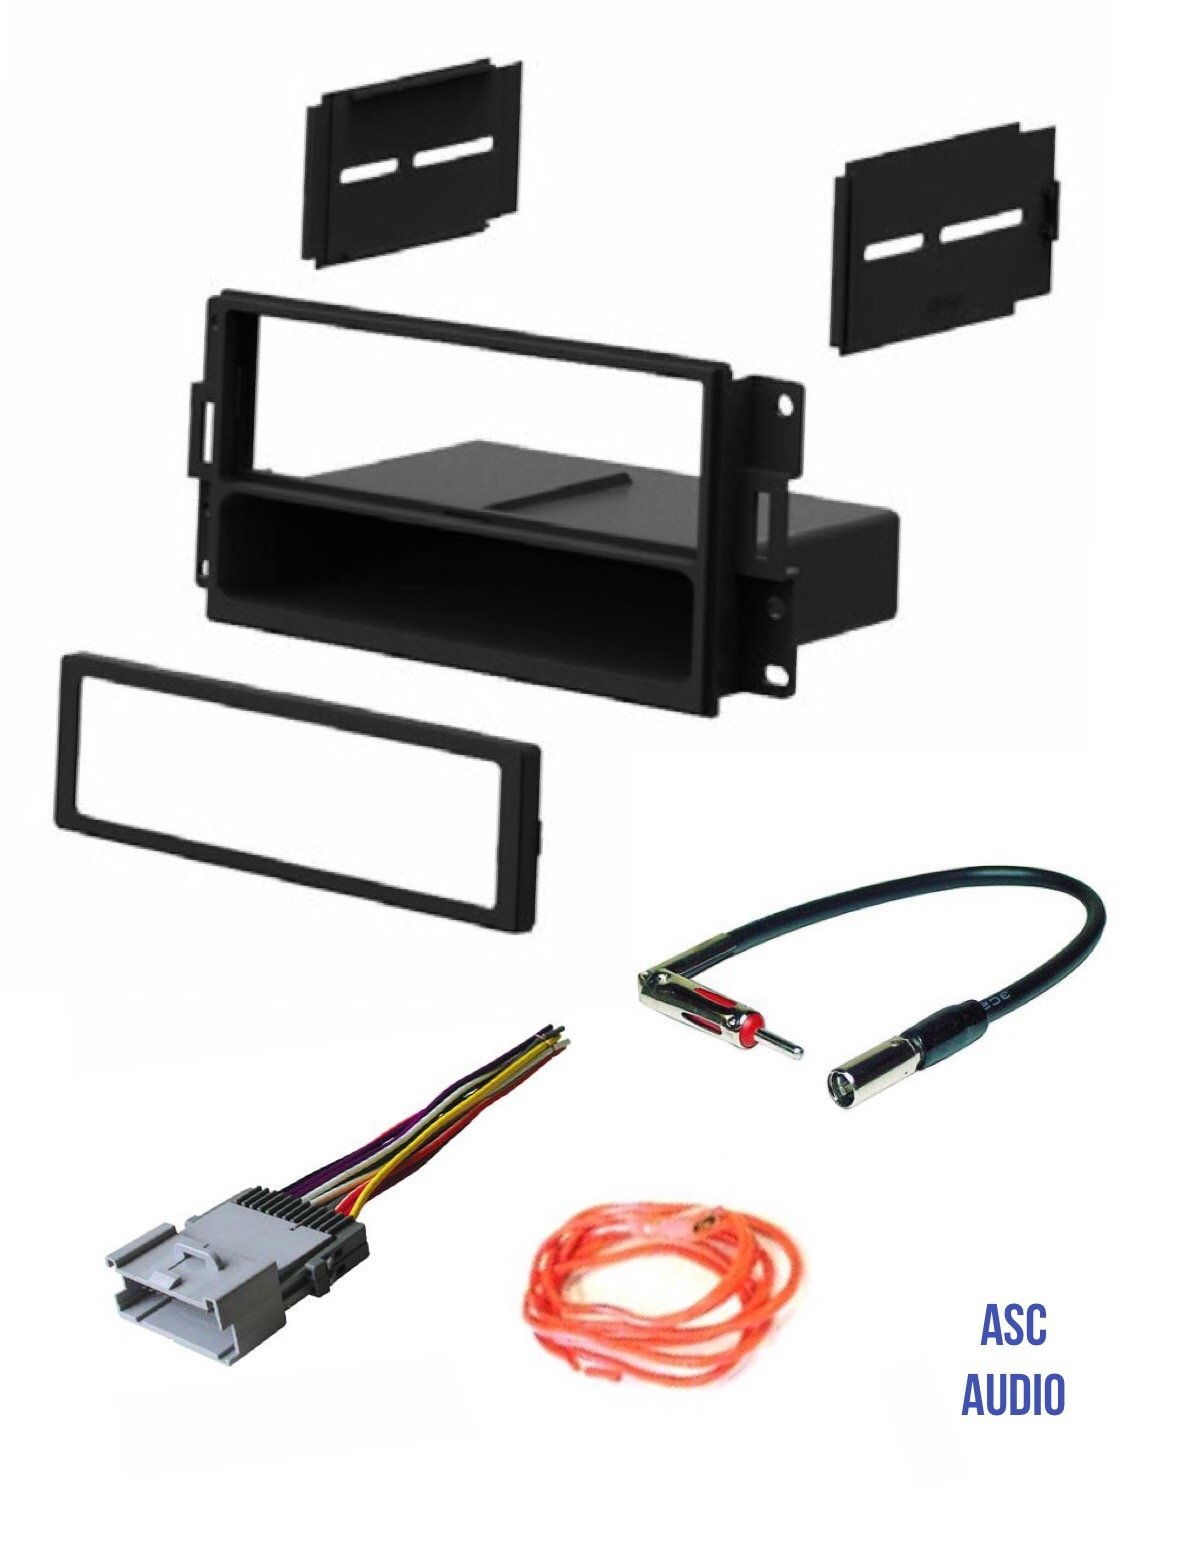 hight resolution of get quotations asc audio car stereo radio dash install kit wire harness and antenna adapter to